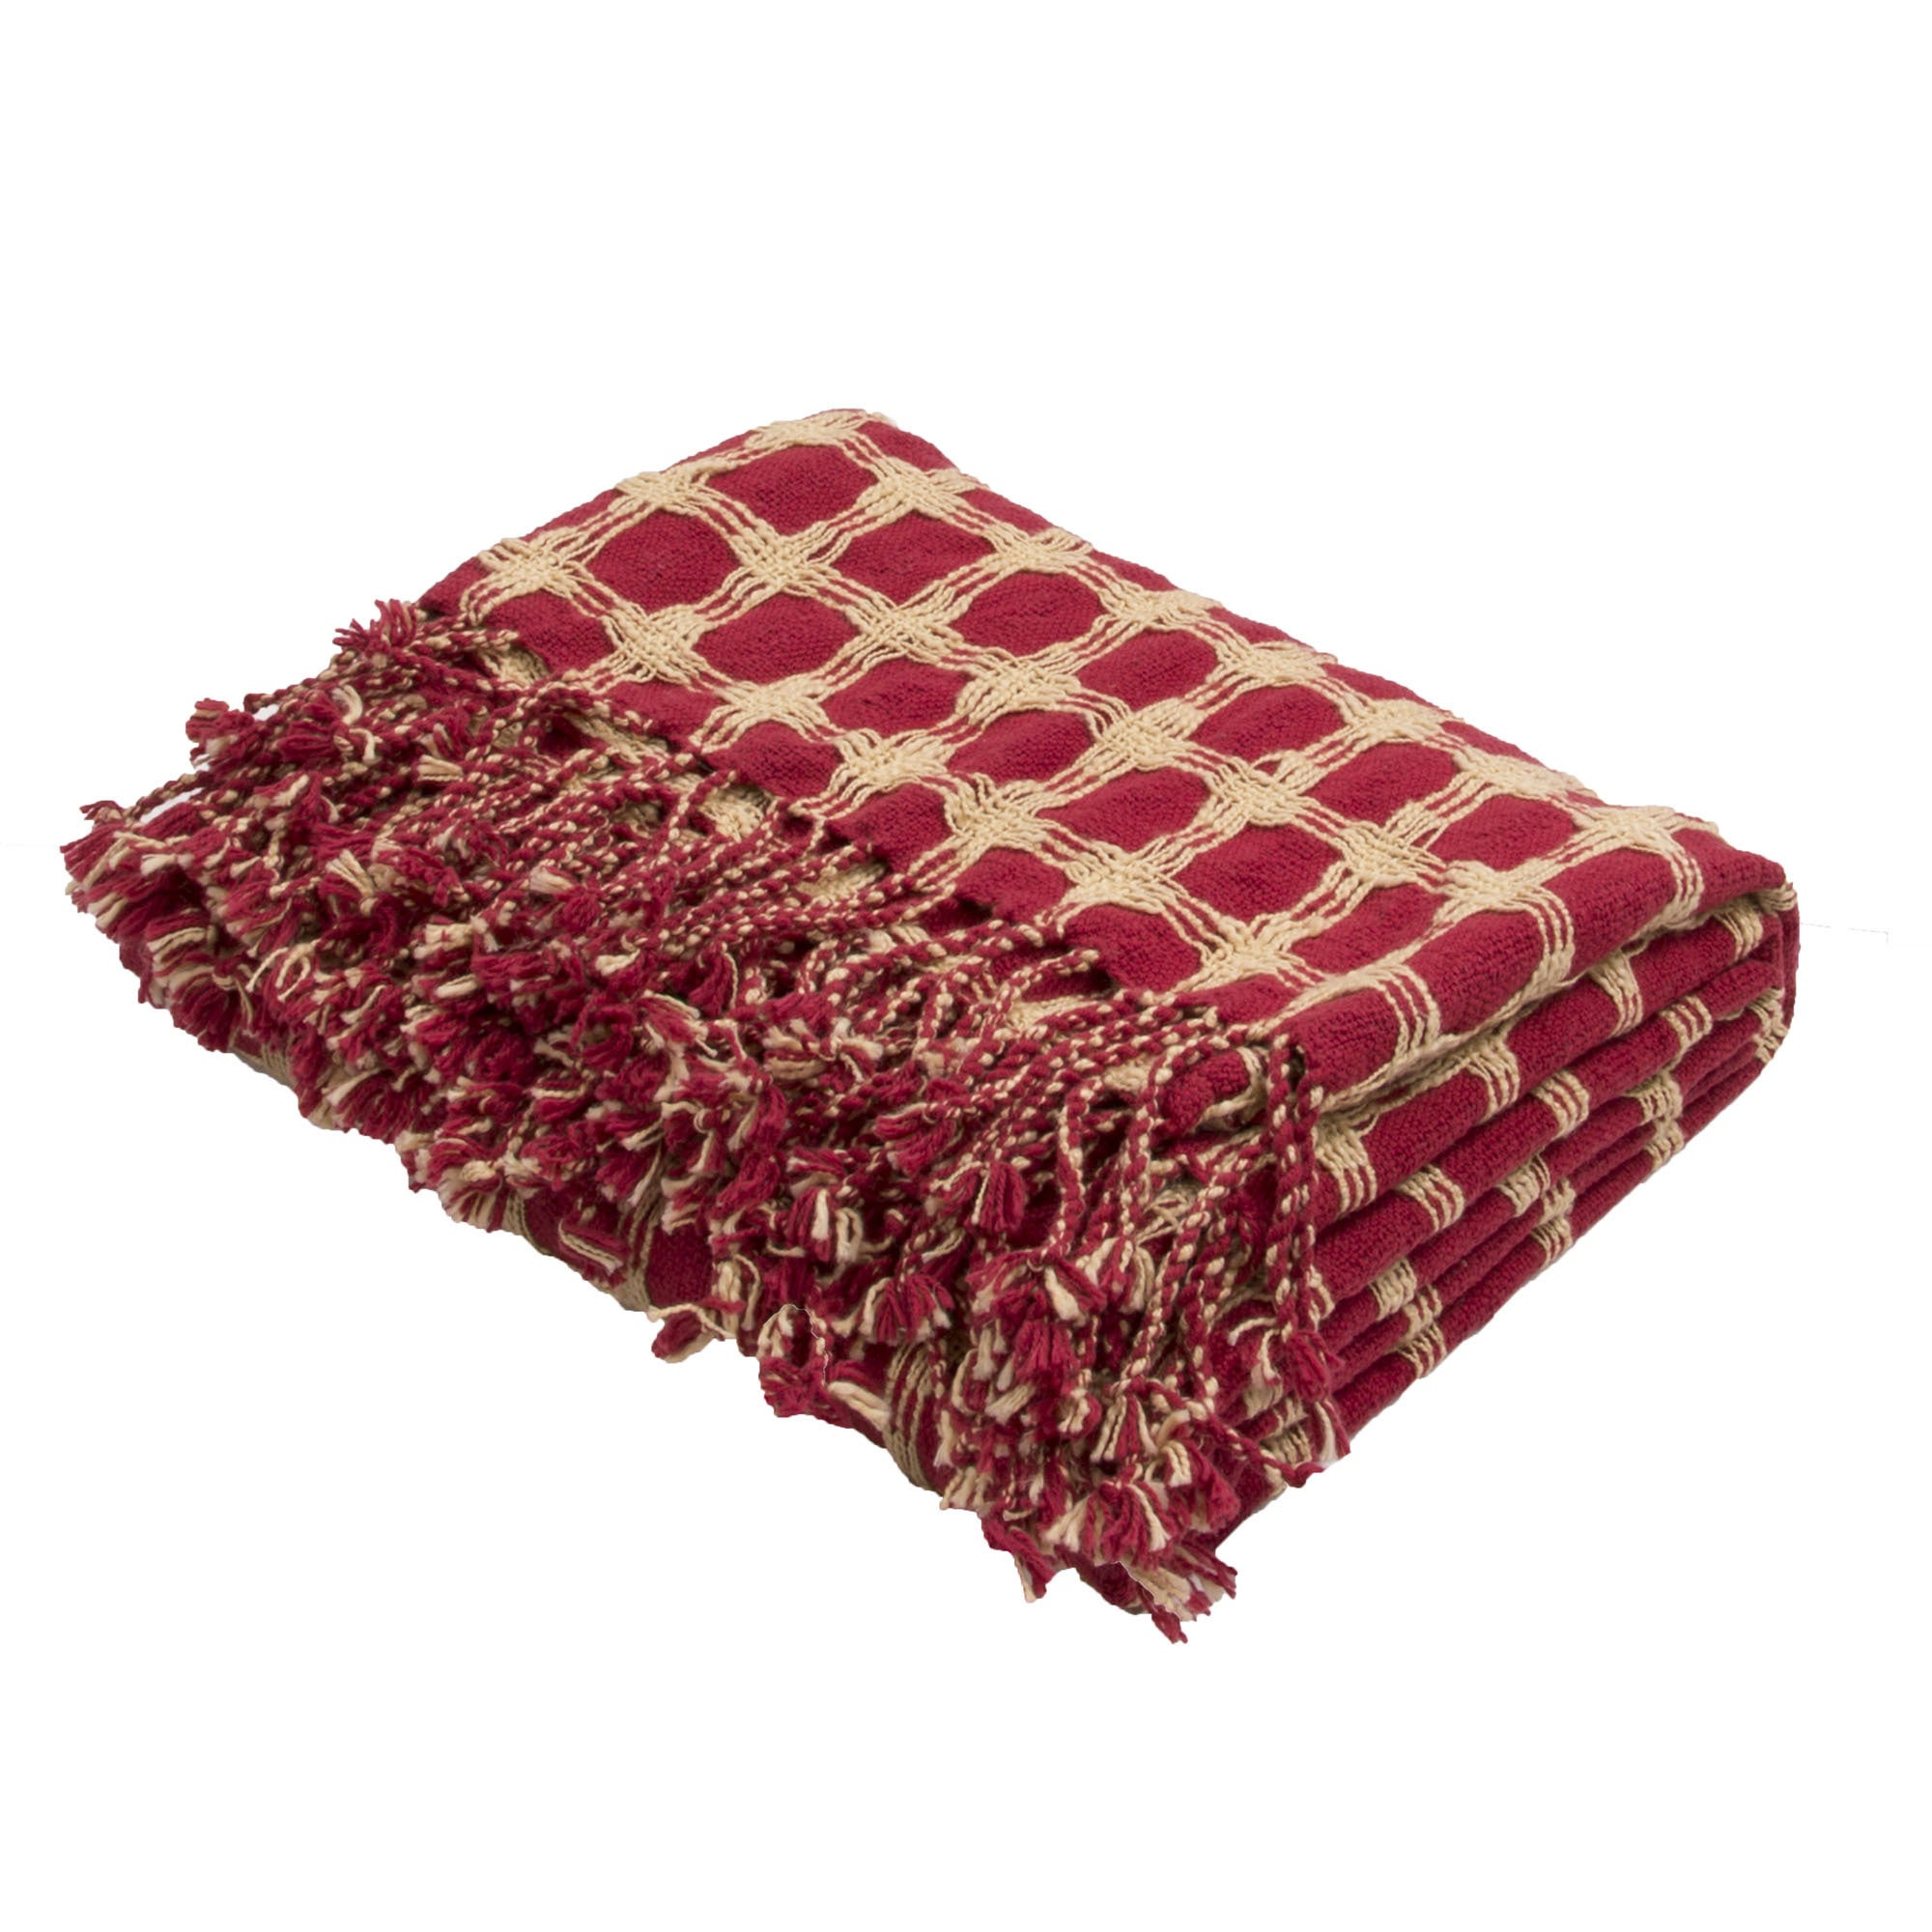 The Gray Barn Tule Handmade Red Cotton Throw